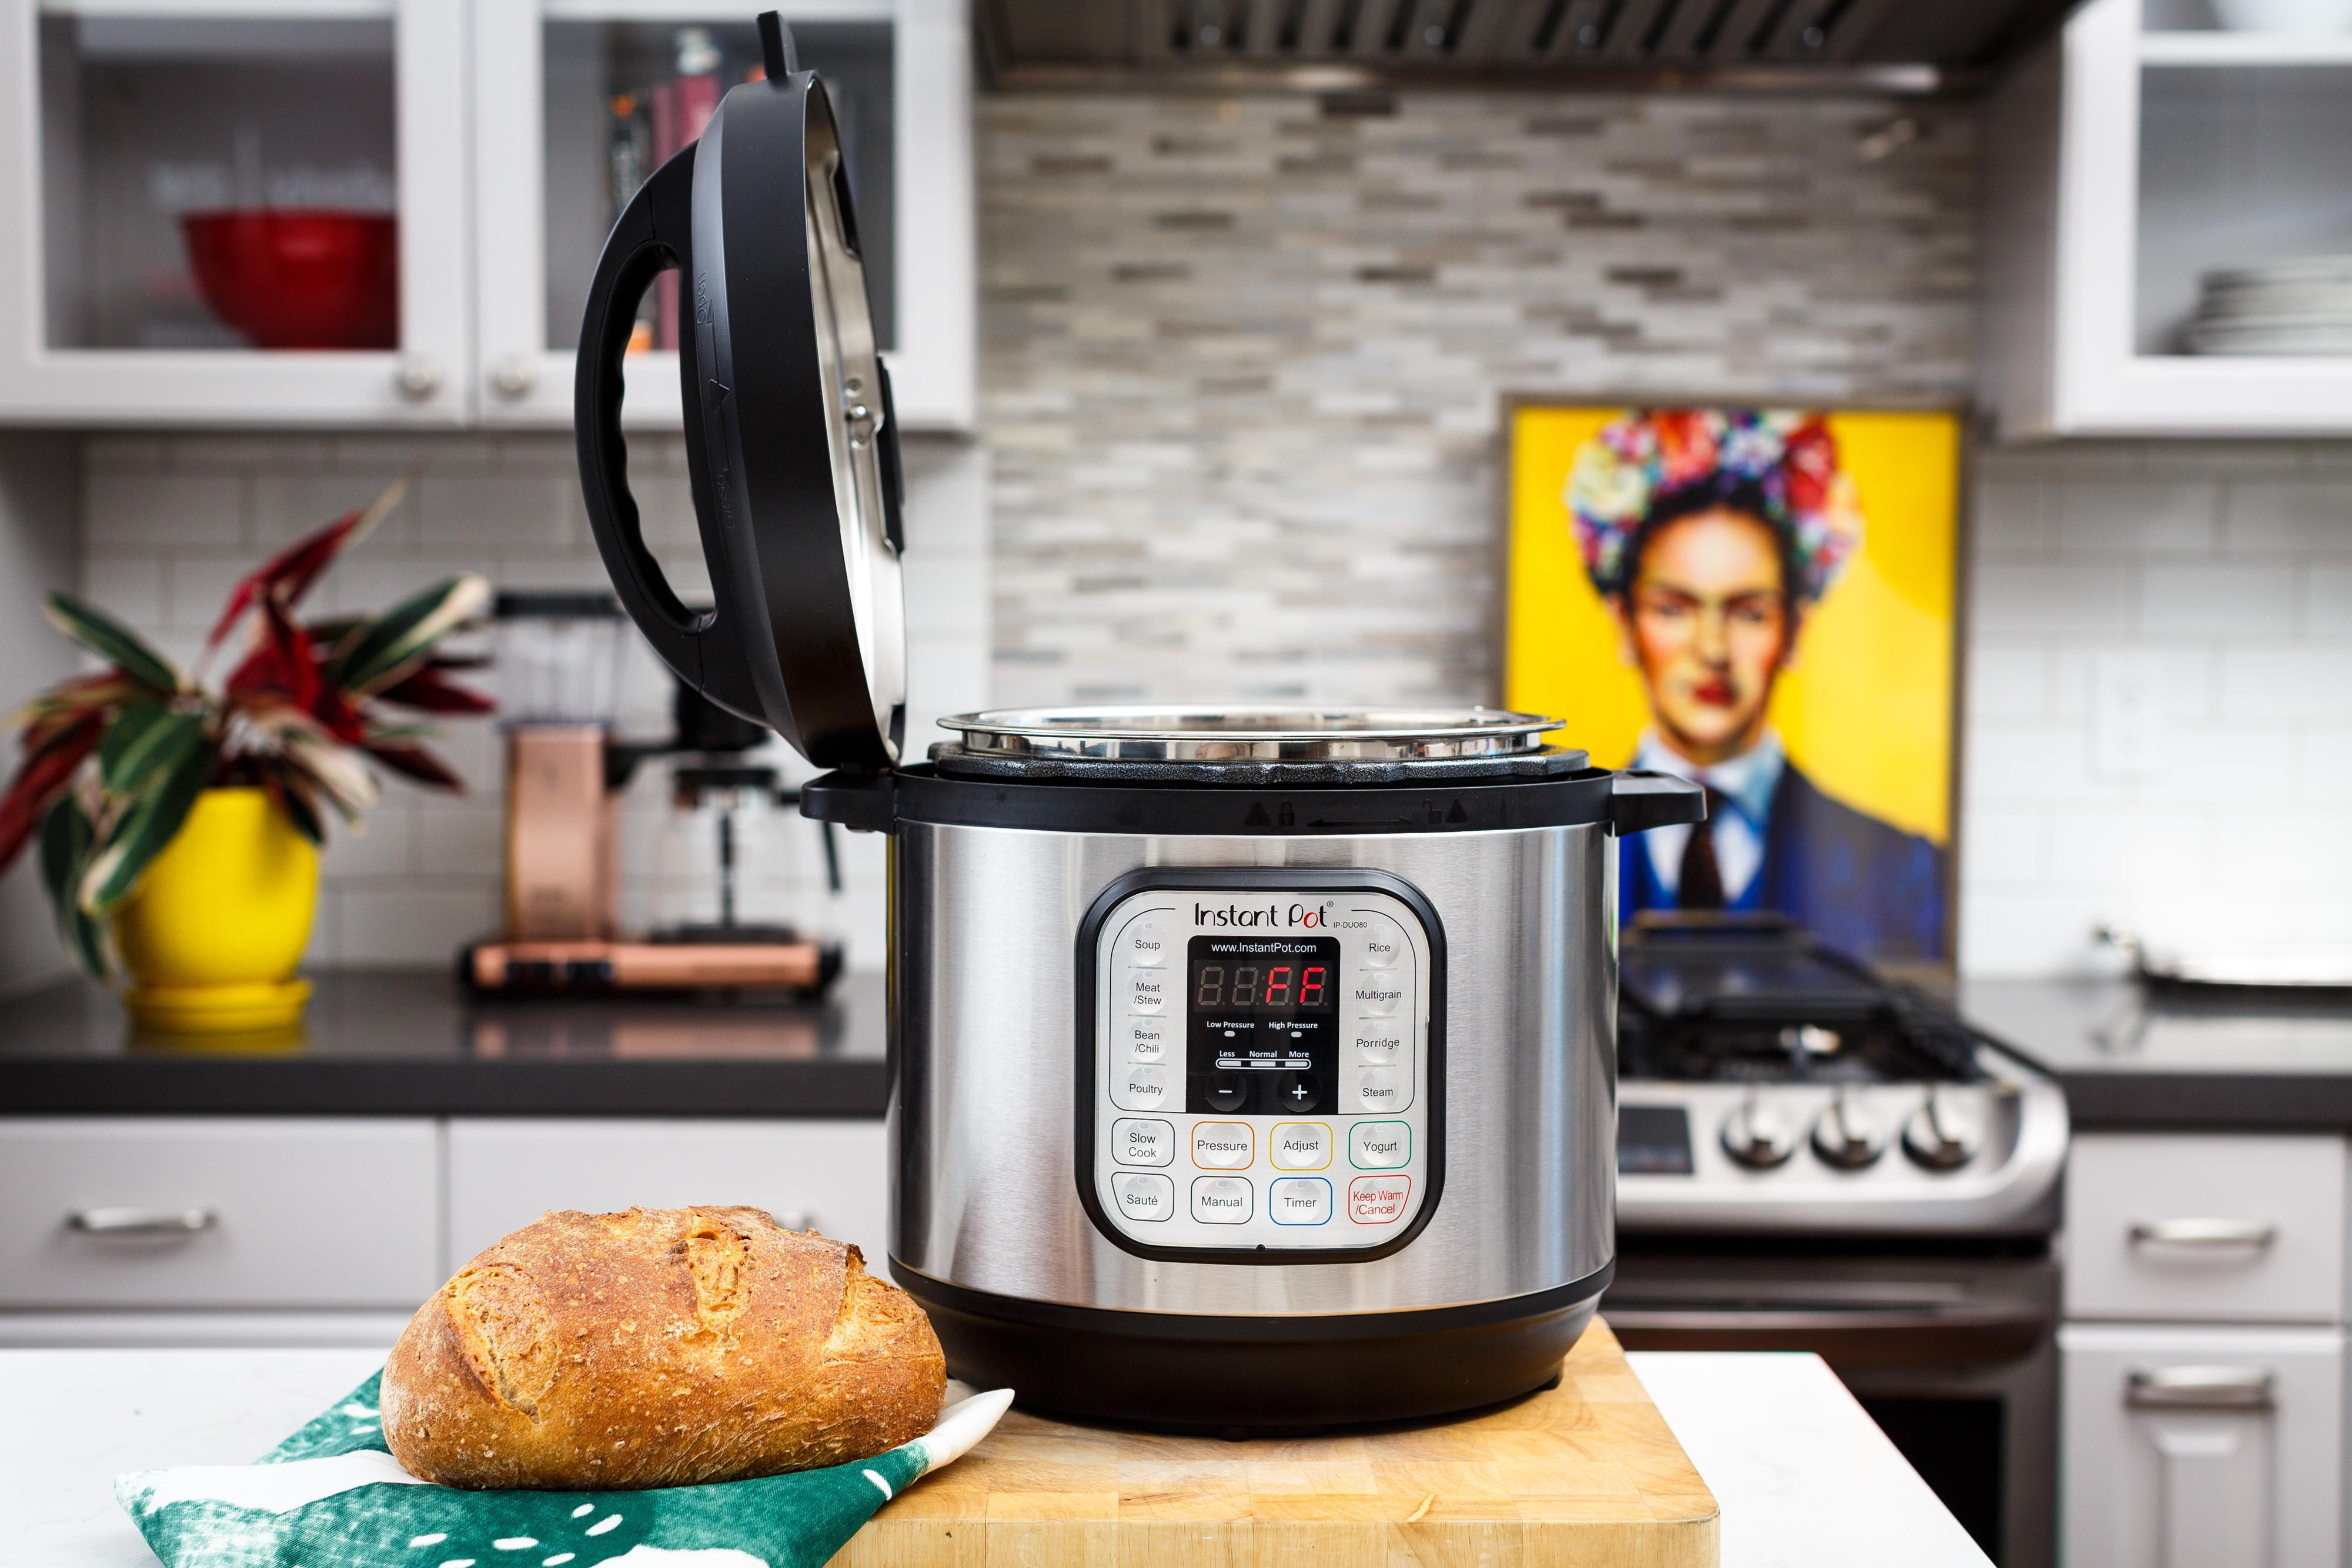 instant-pot-sf-smart-home-5-8-18-7653